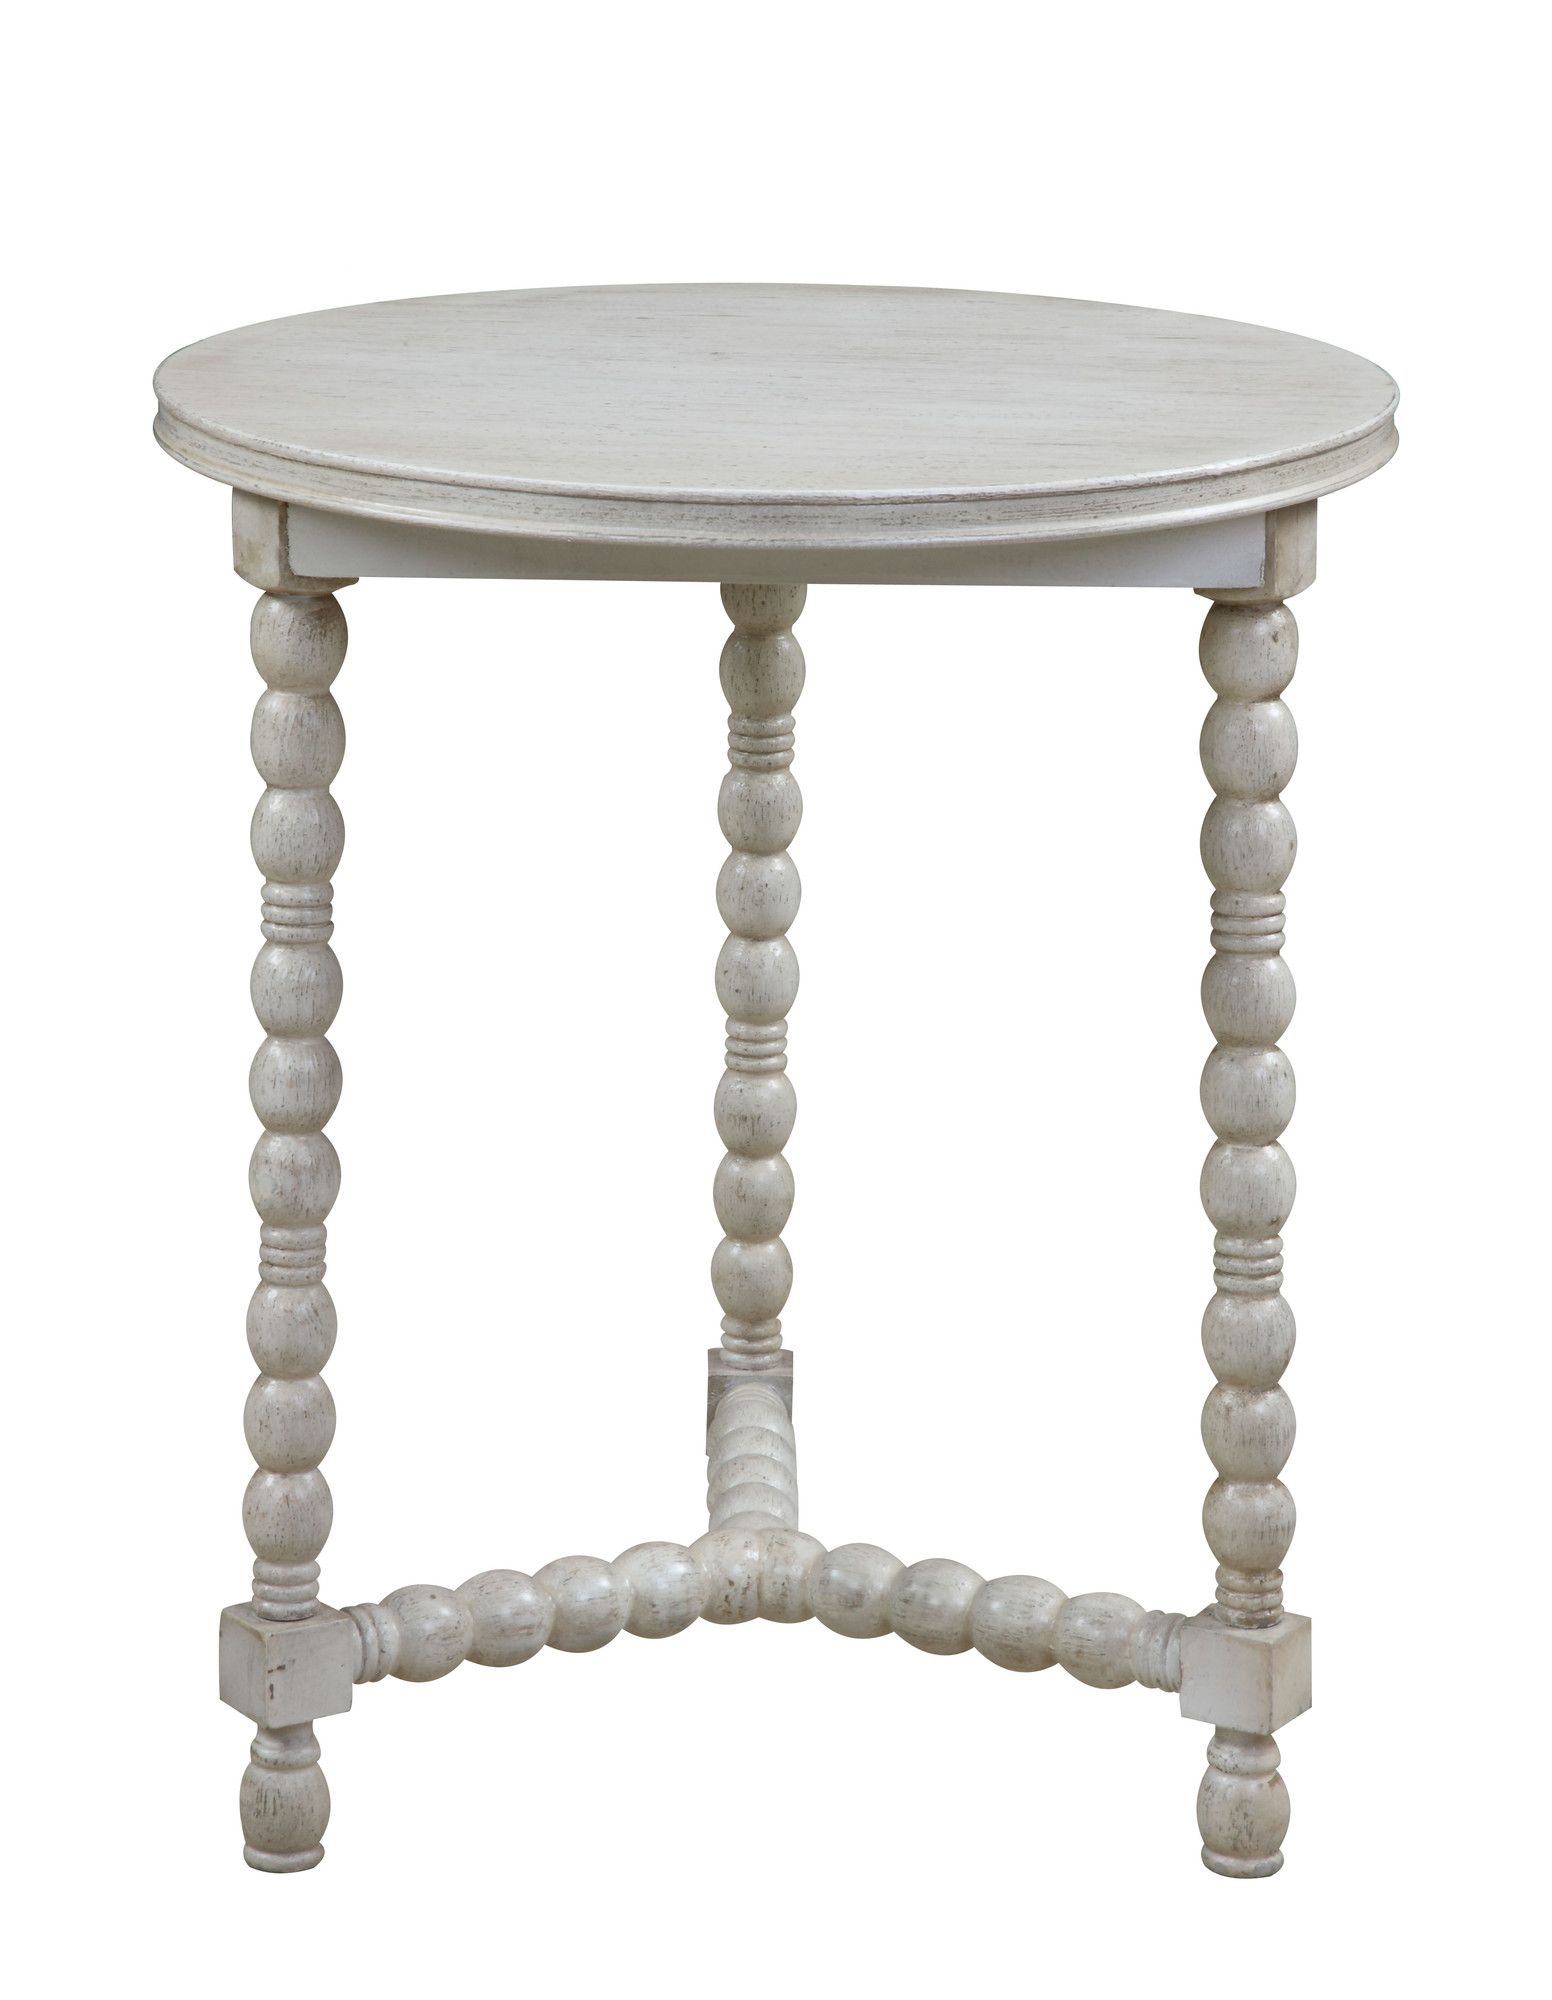 gail accents gray cottage end table tripod base spindle wood accent with legs round shape distressed barn white finish collection manufacturer kirkland furniture target coffee